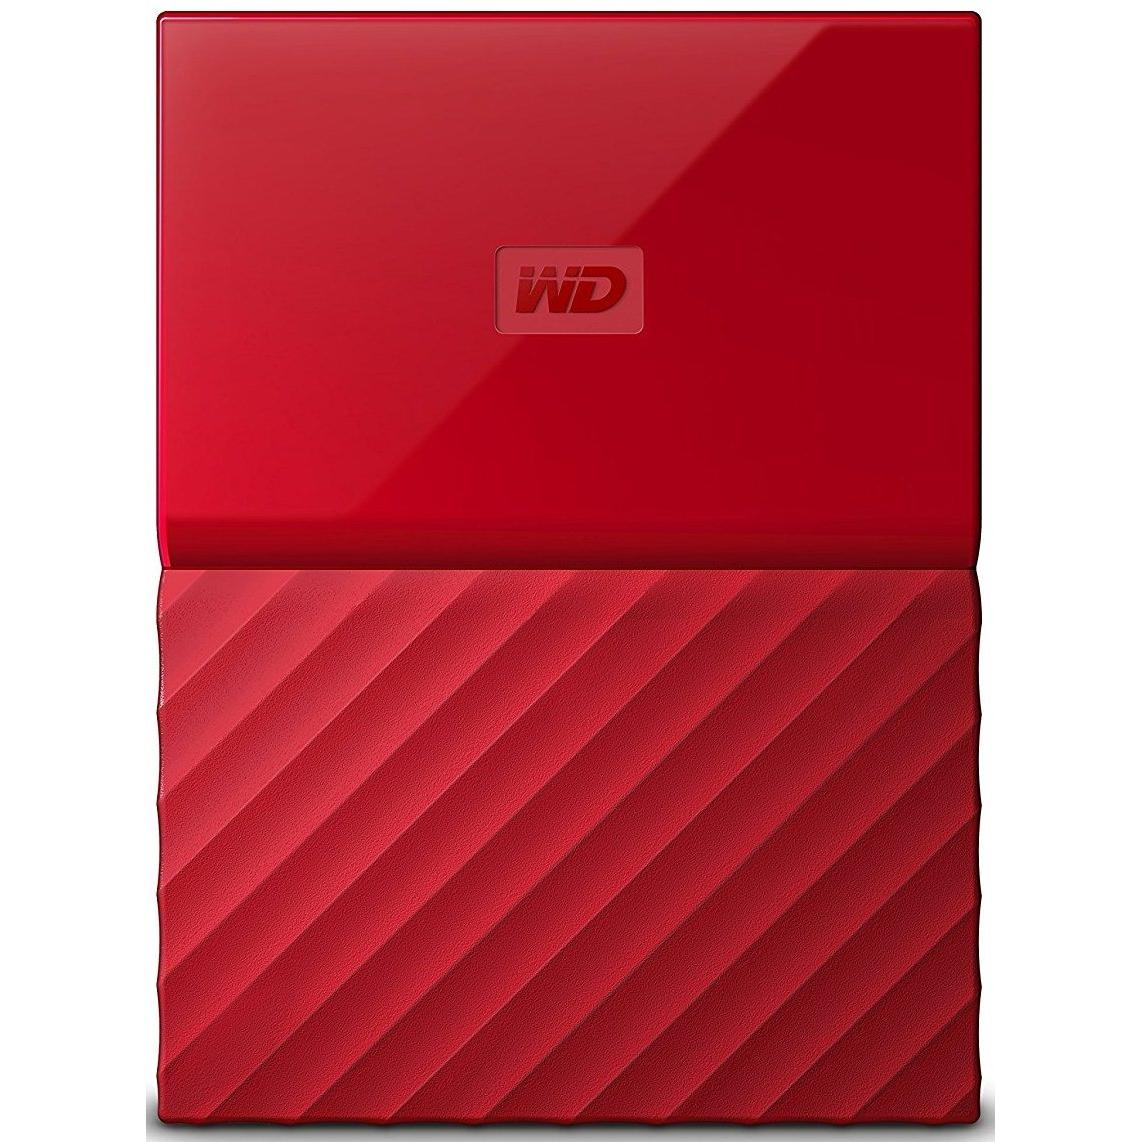 Внешний винчестер 2TB WD My Passport Red (WDBS4B0020BRD-WESN)